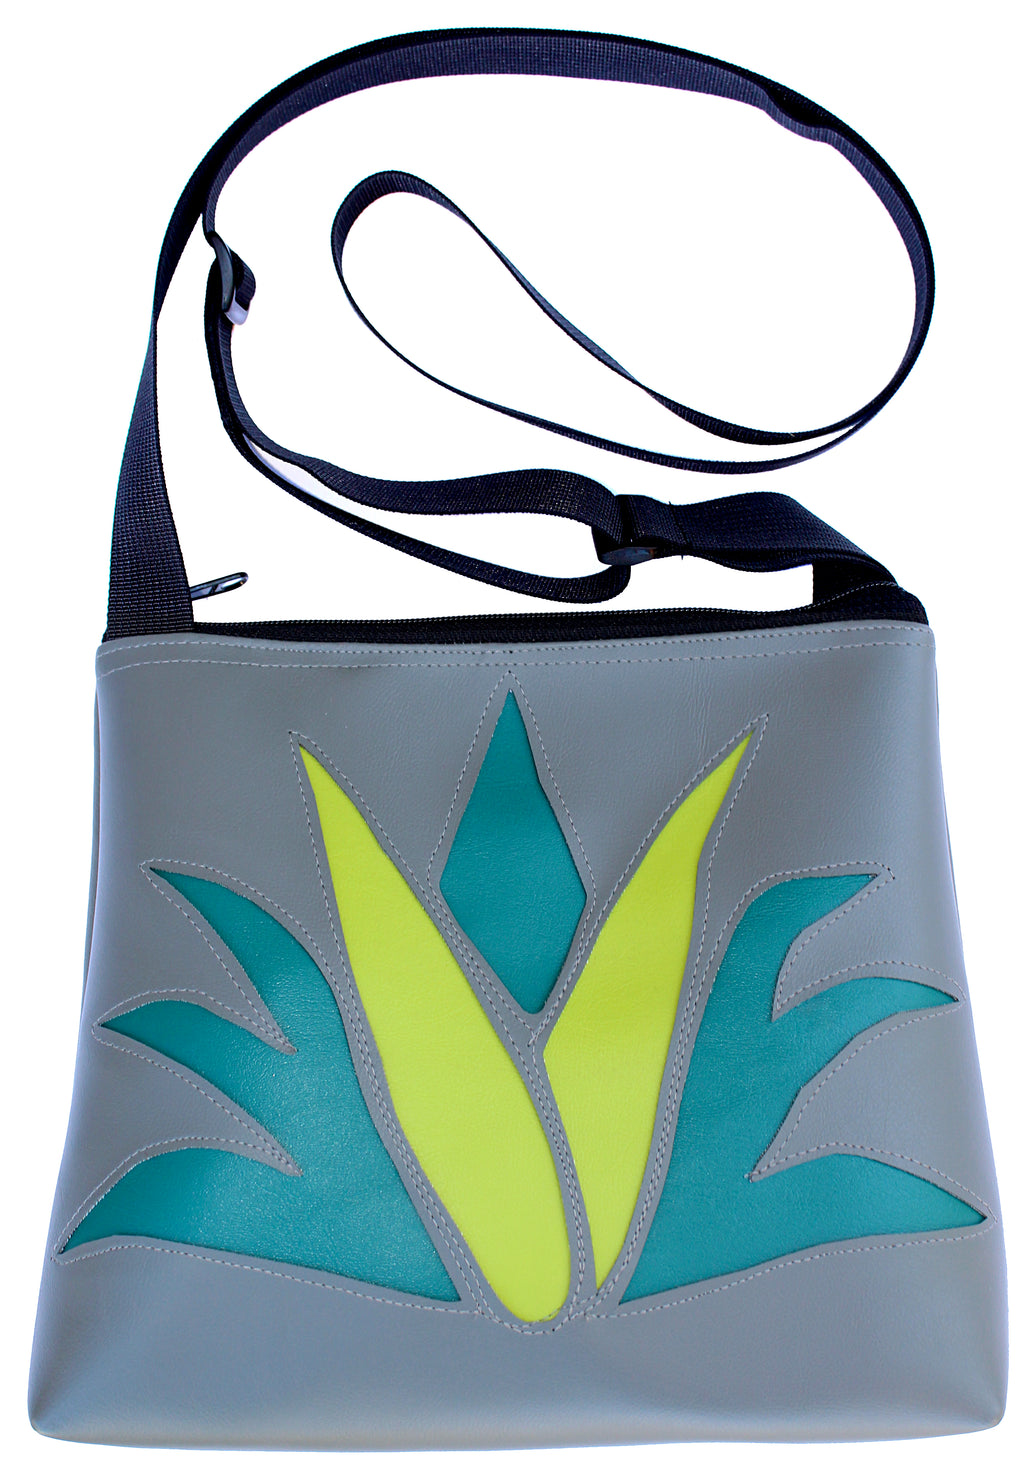 Agave on Grey mid-size crossbody